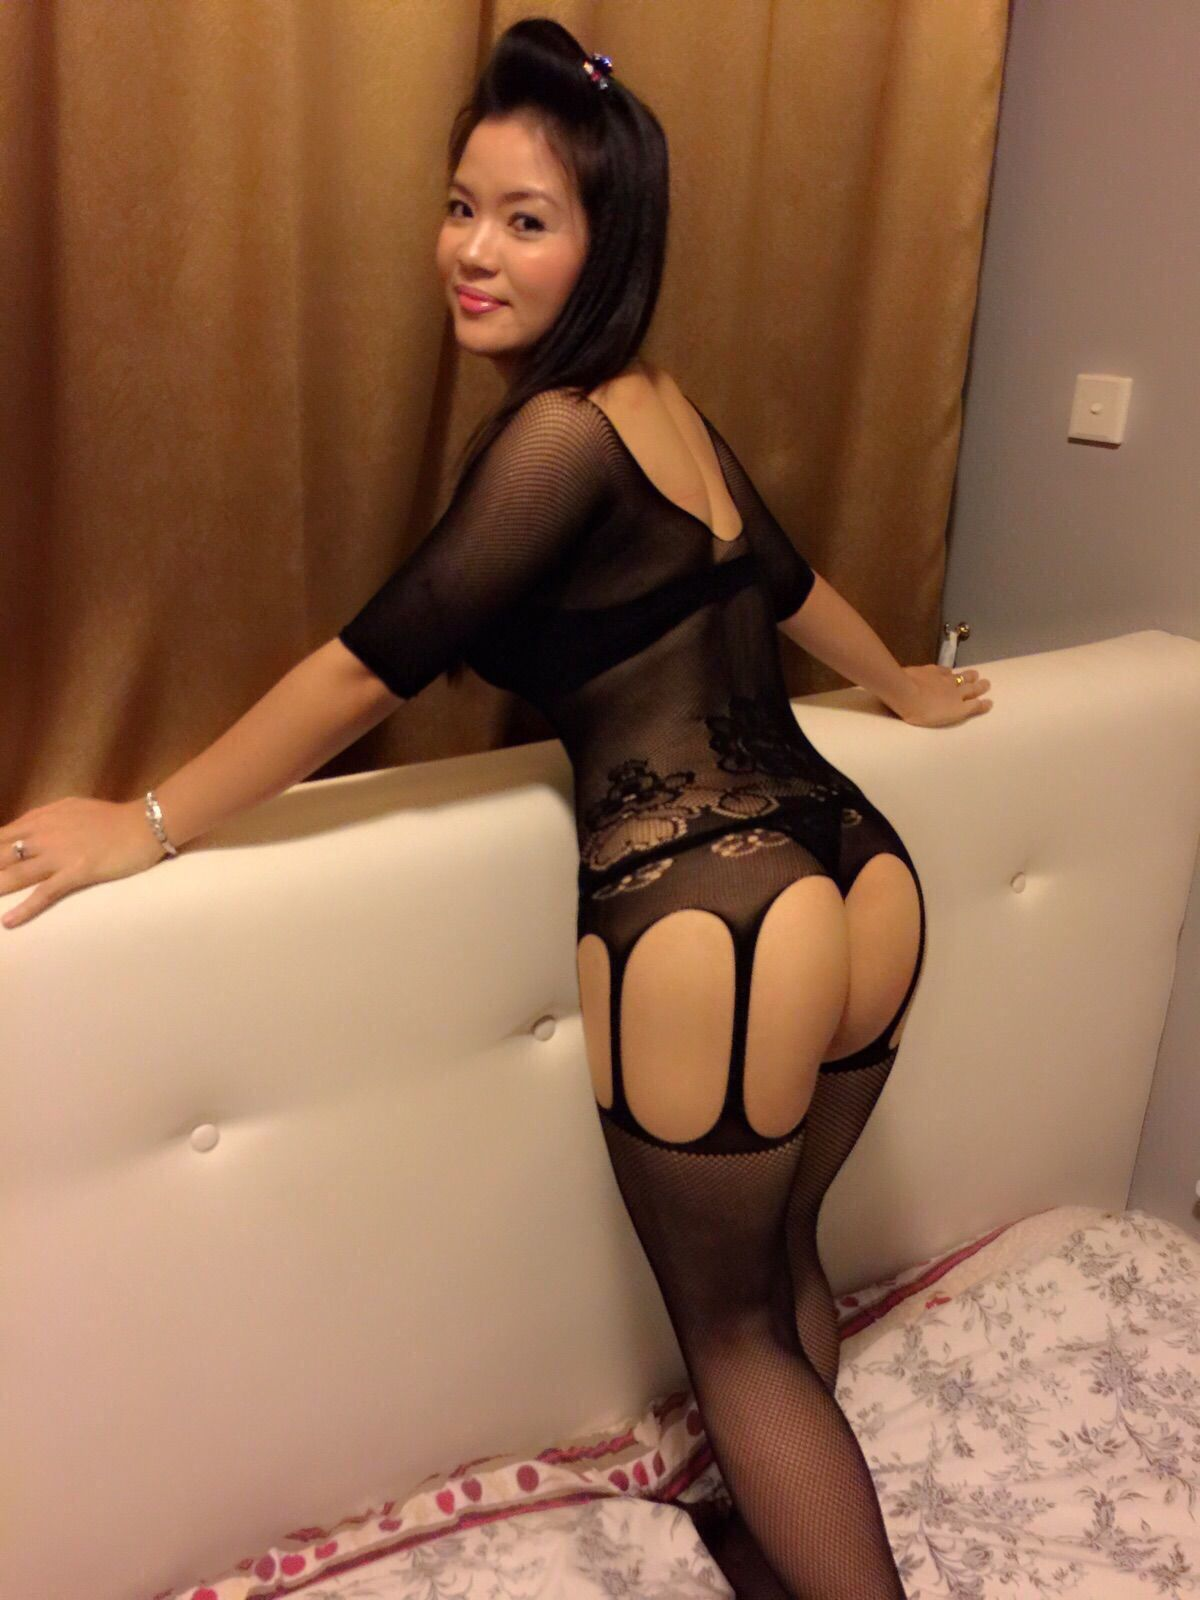 SEXTUBE REAL UK ESCORT